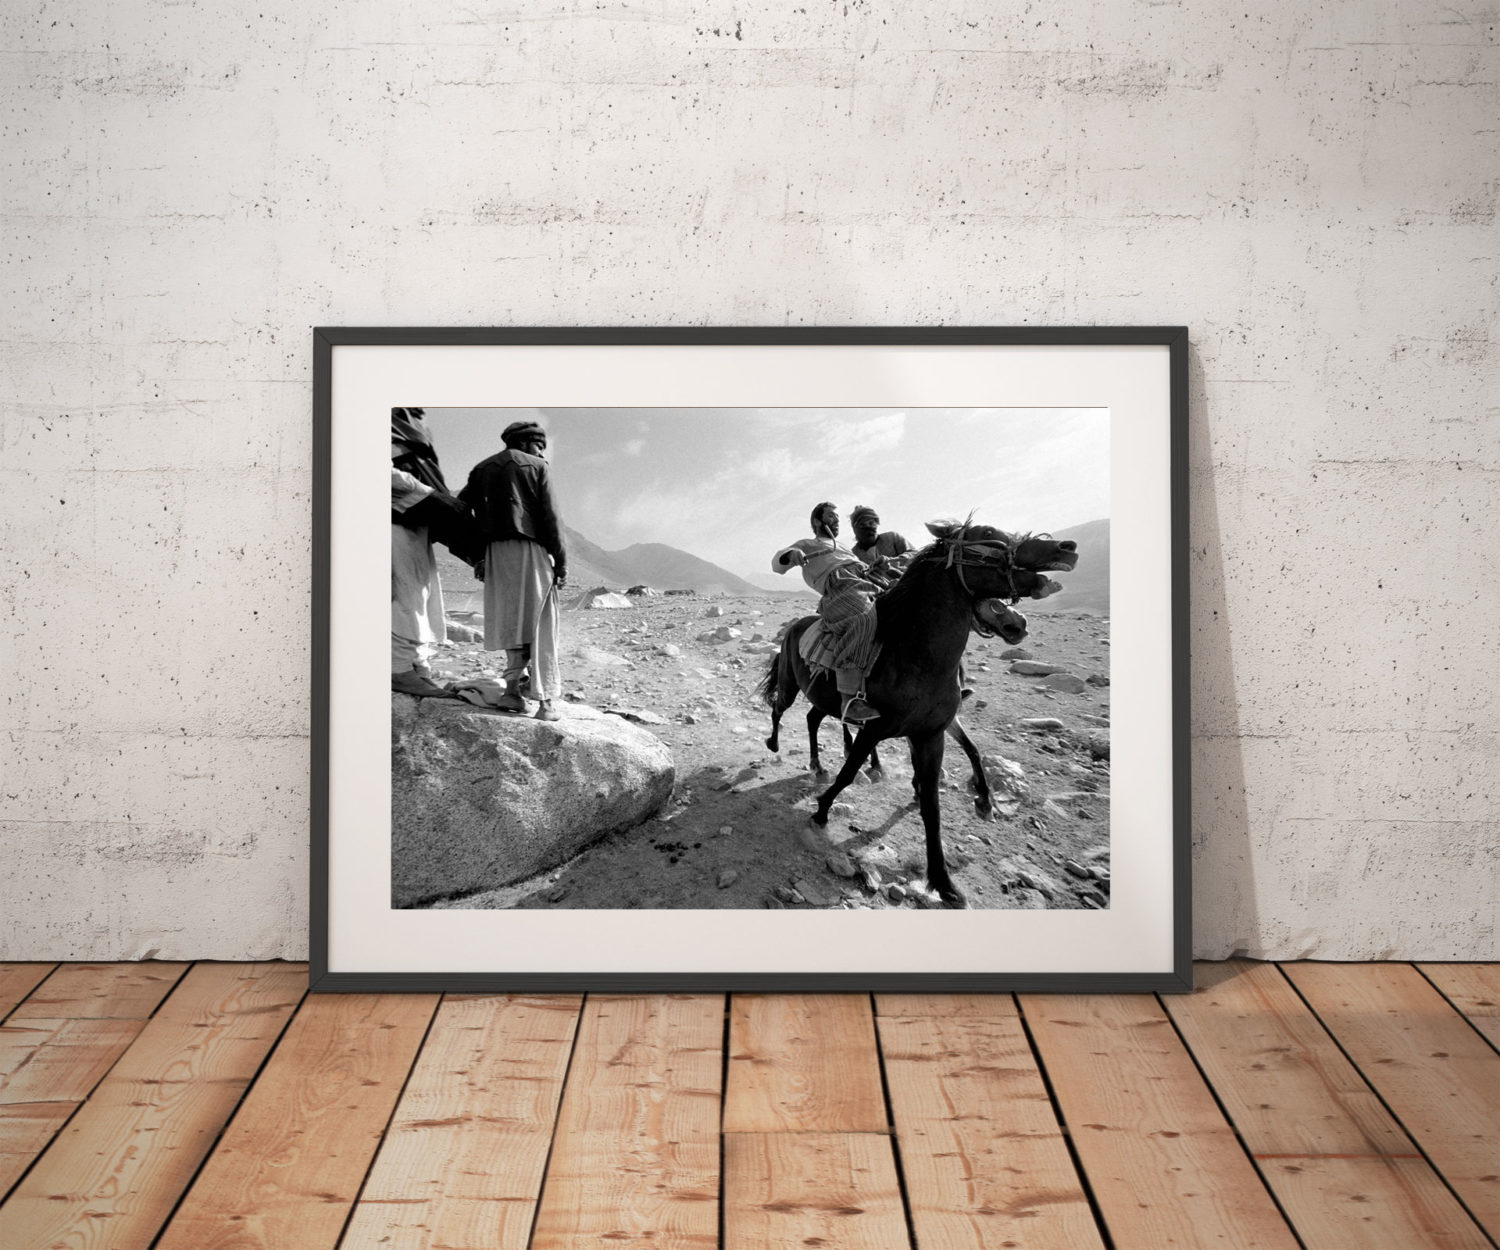 'AFGHAN NOMADS & HORSES' © JASON FLORIO BW men on horses playing Buzkashi in desert